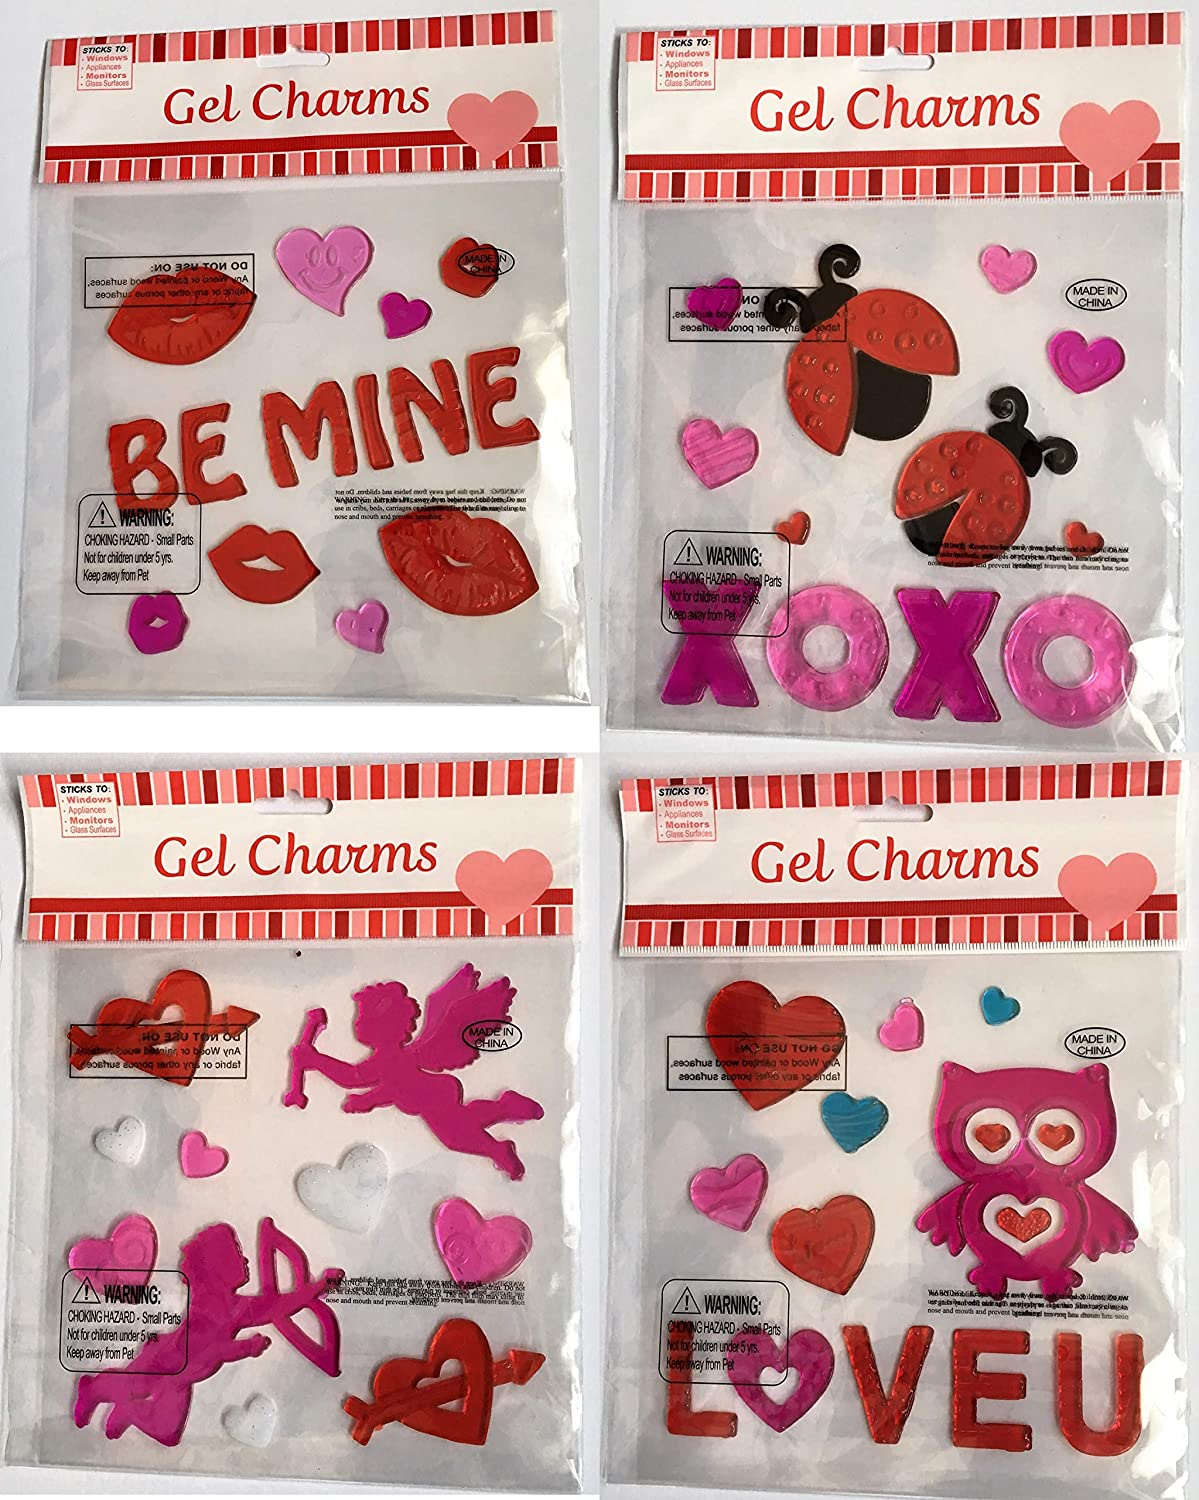 aabcbc4cbdeee Amazon.com: Gel Charms Valentines Day Window Clings Decoration ...